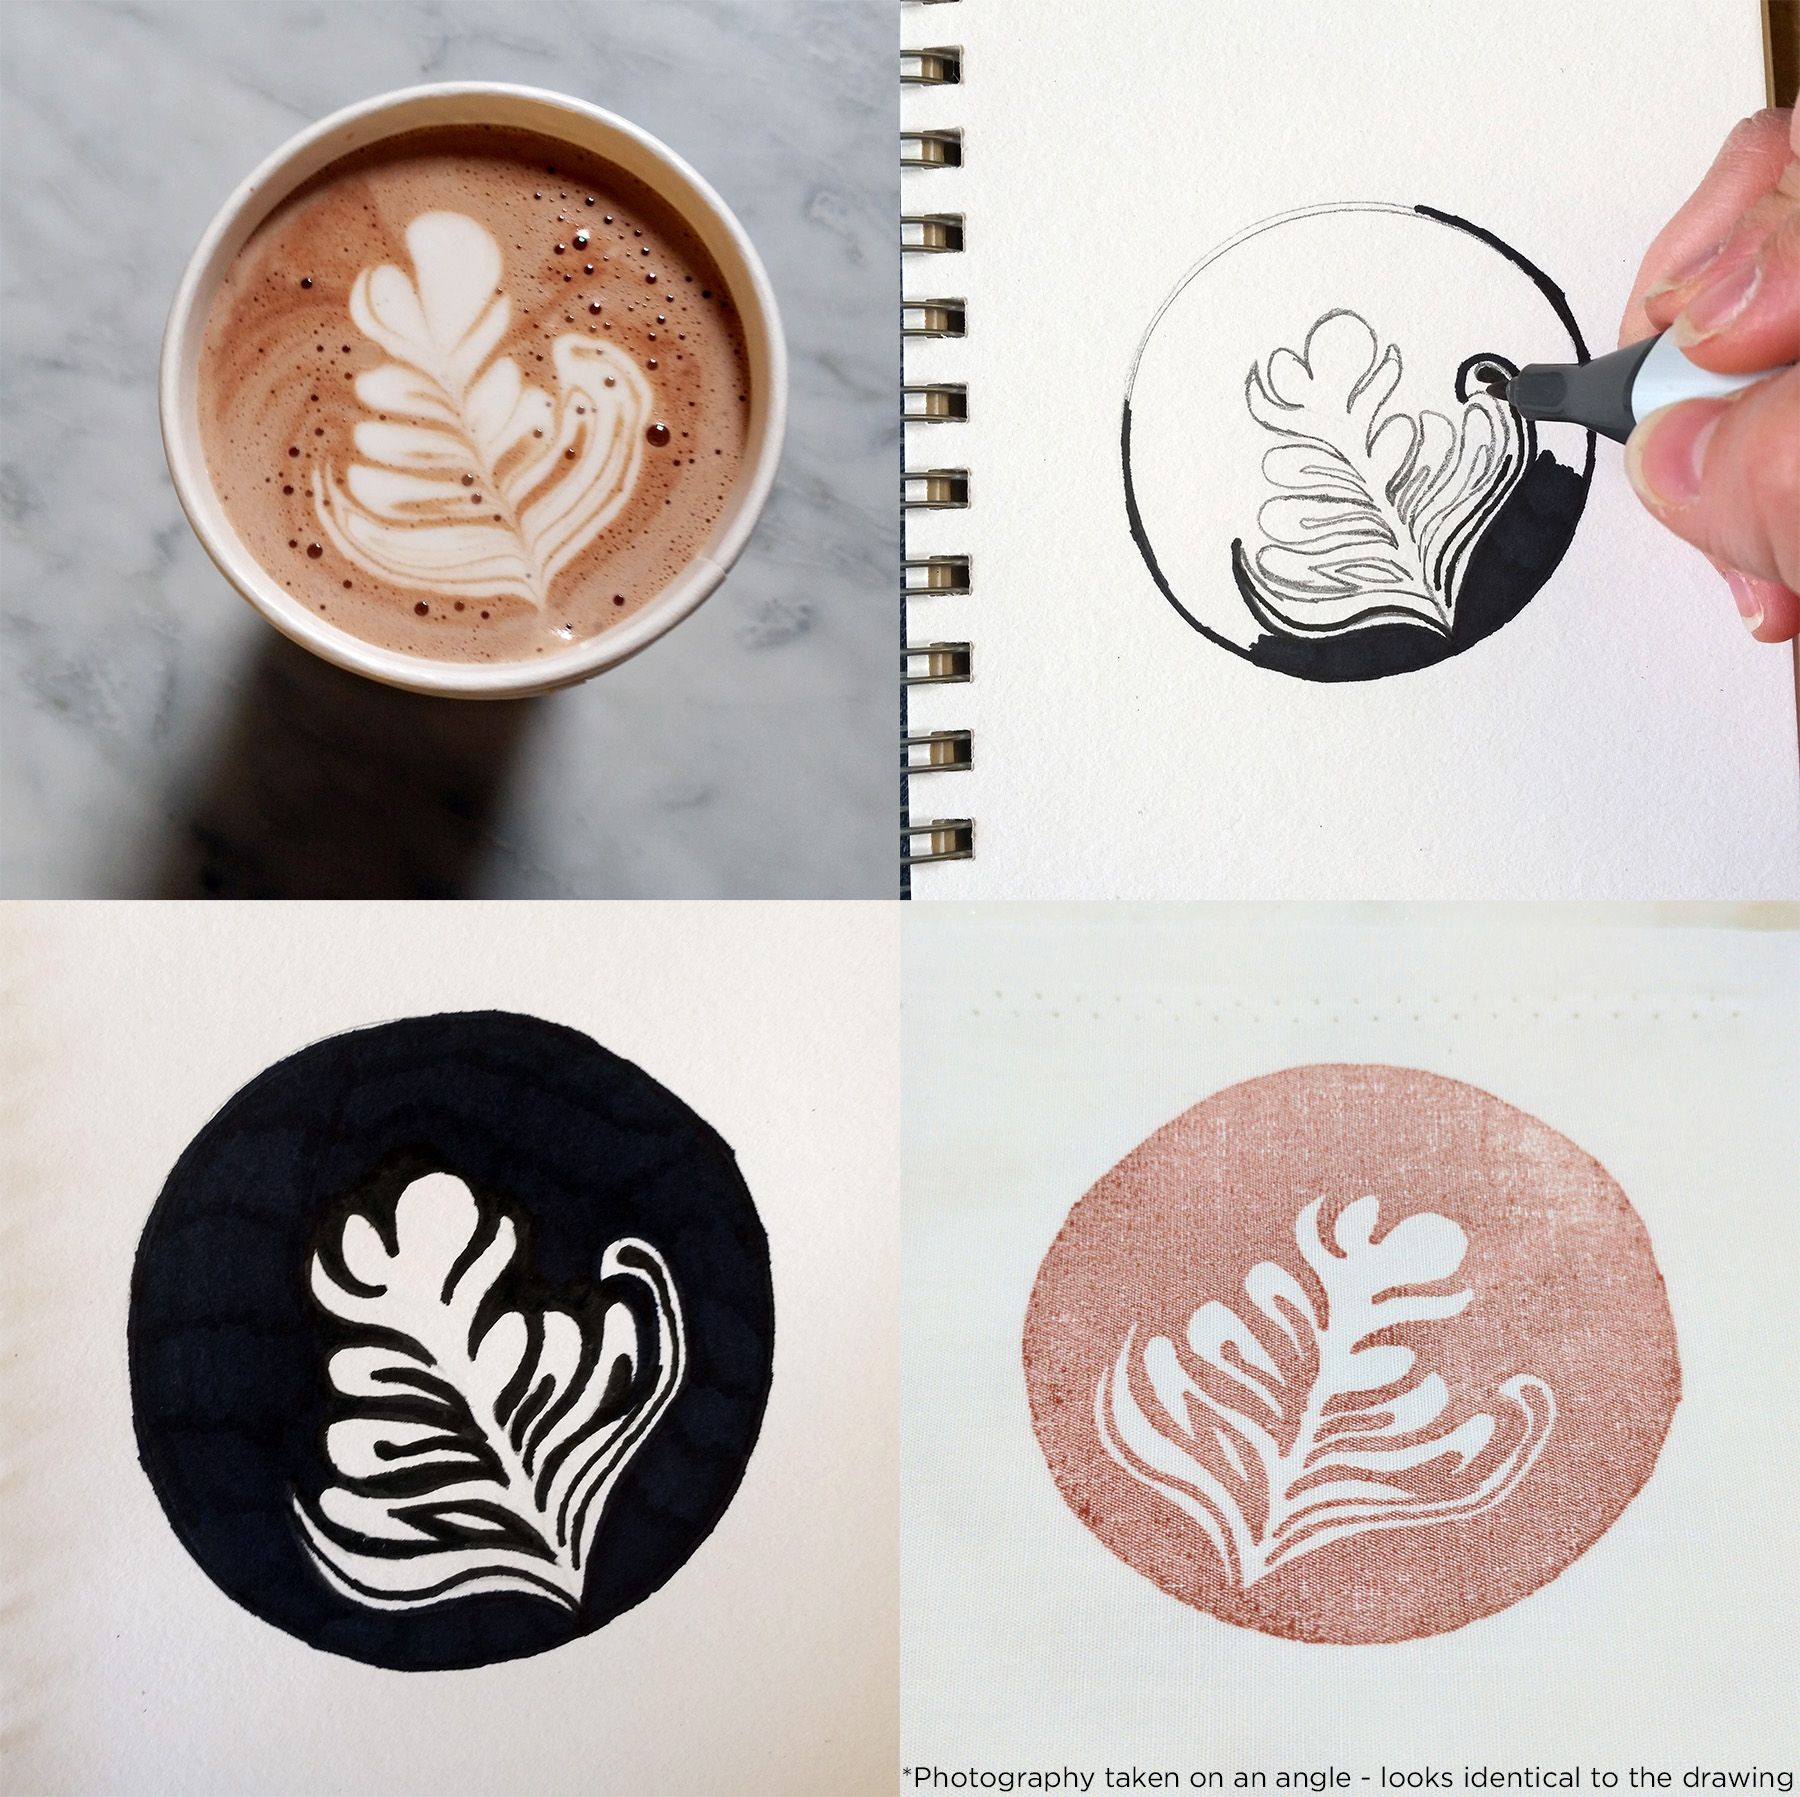 Latte art - how a warm beverage turned into a sketch in my notebook, a rubber stamp, and ultimately a hand-stamped scarf